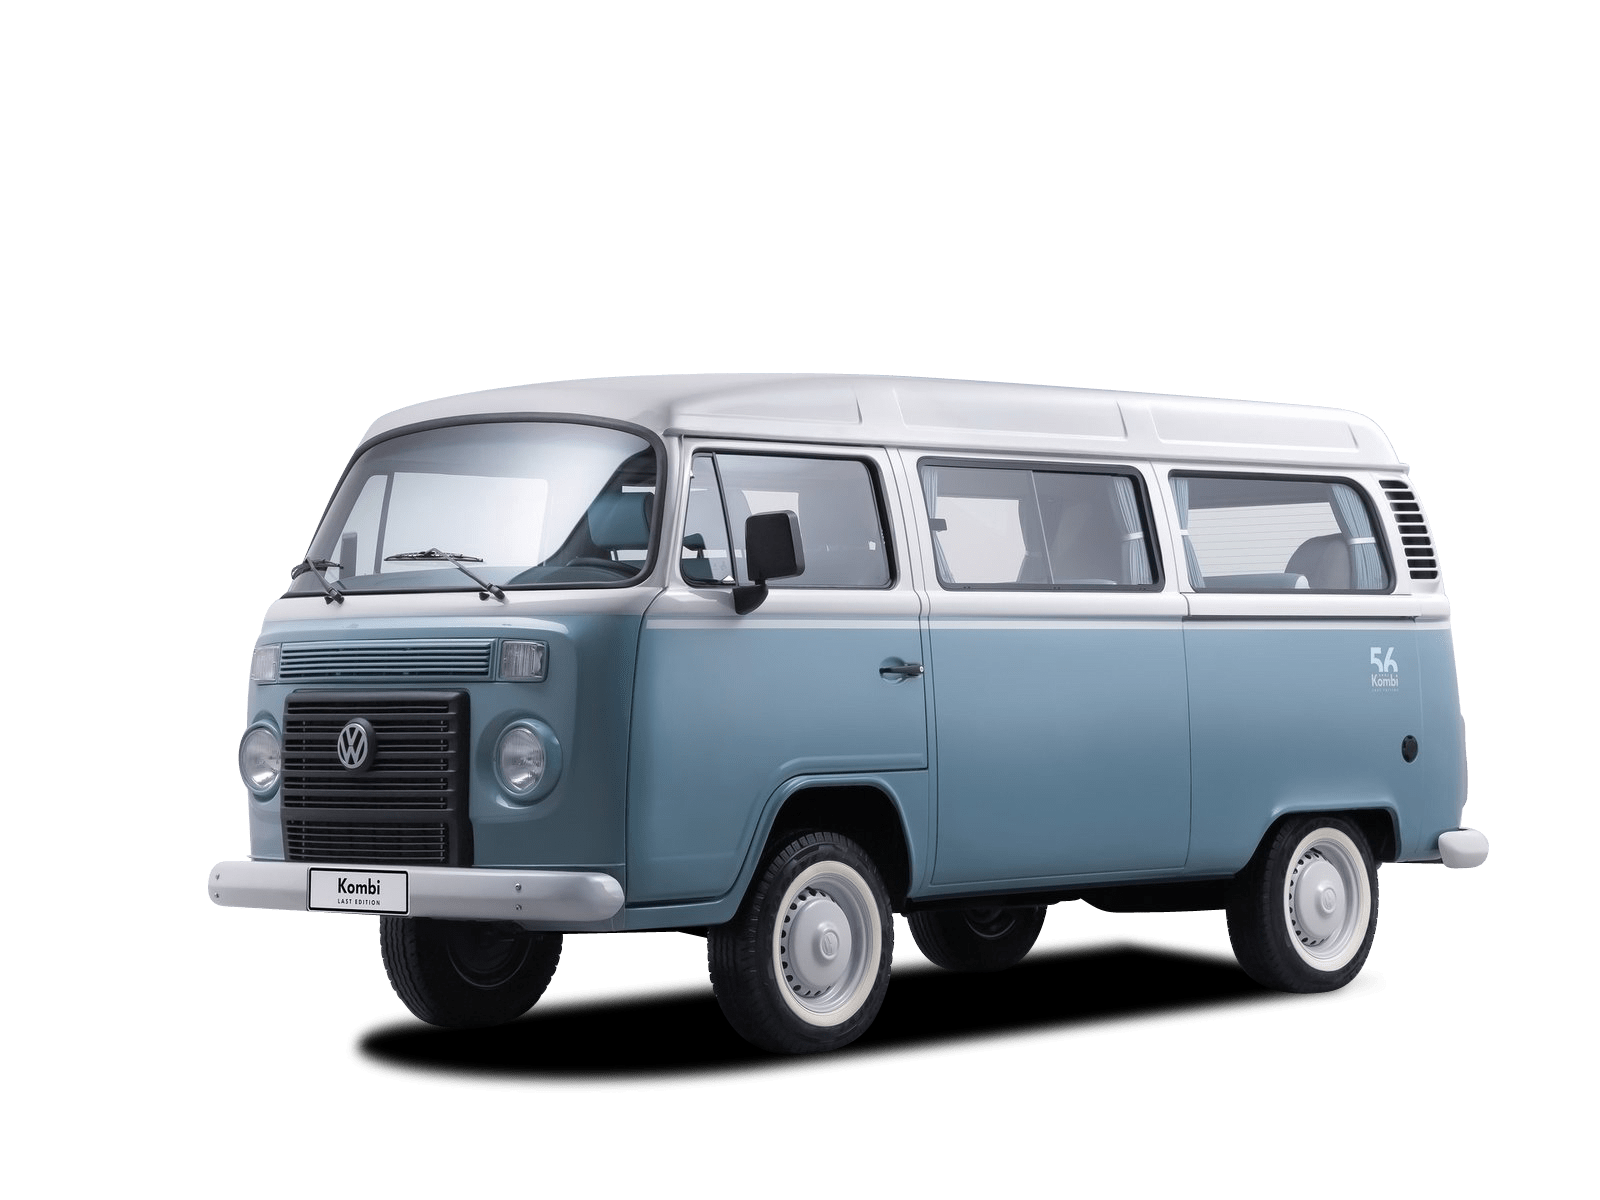 Hippie clipart combi. Vw kombi png transparent